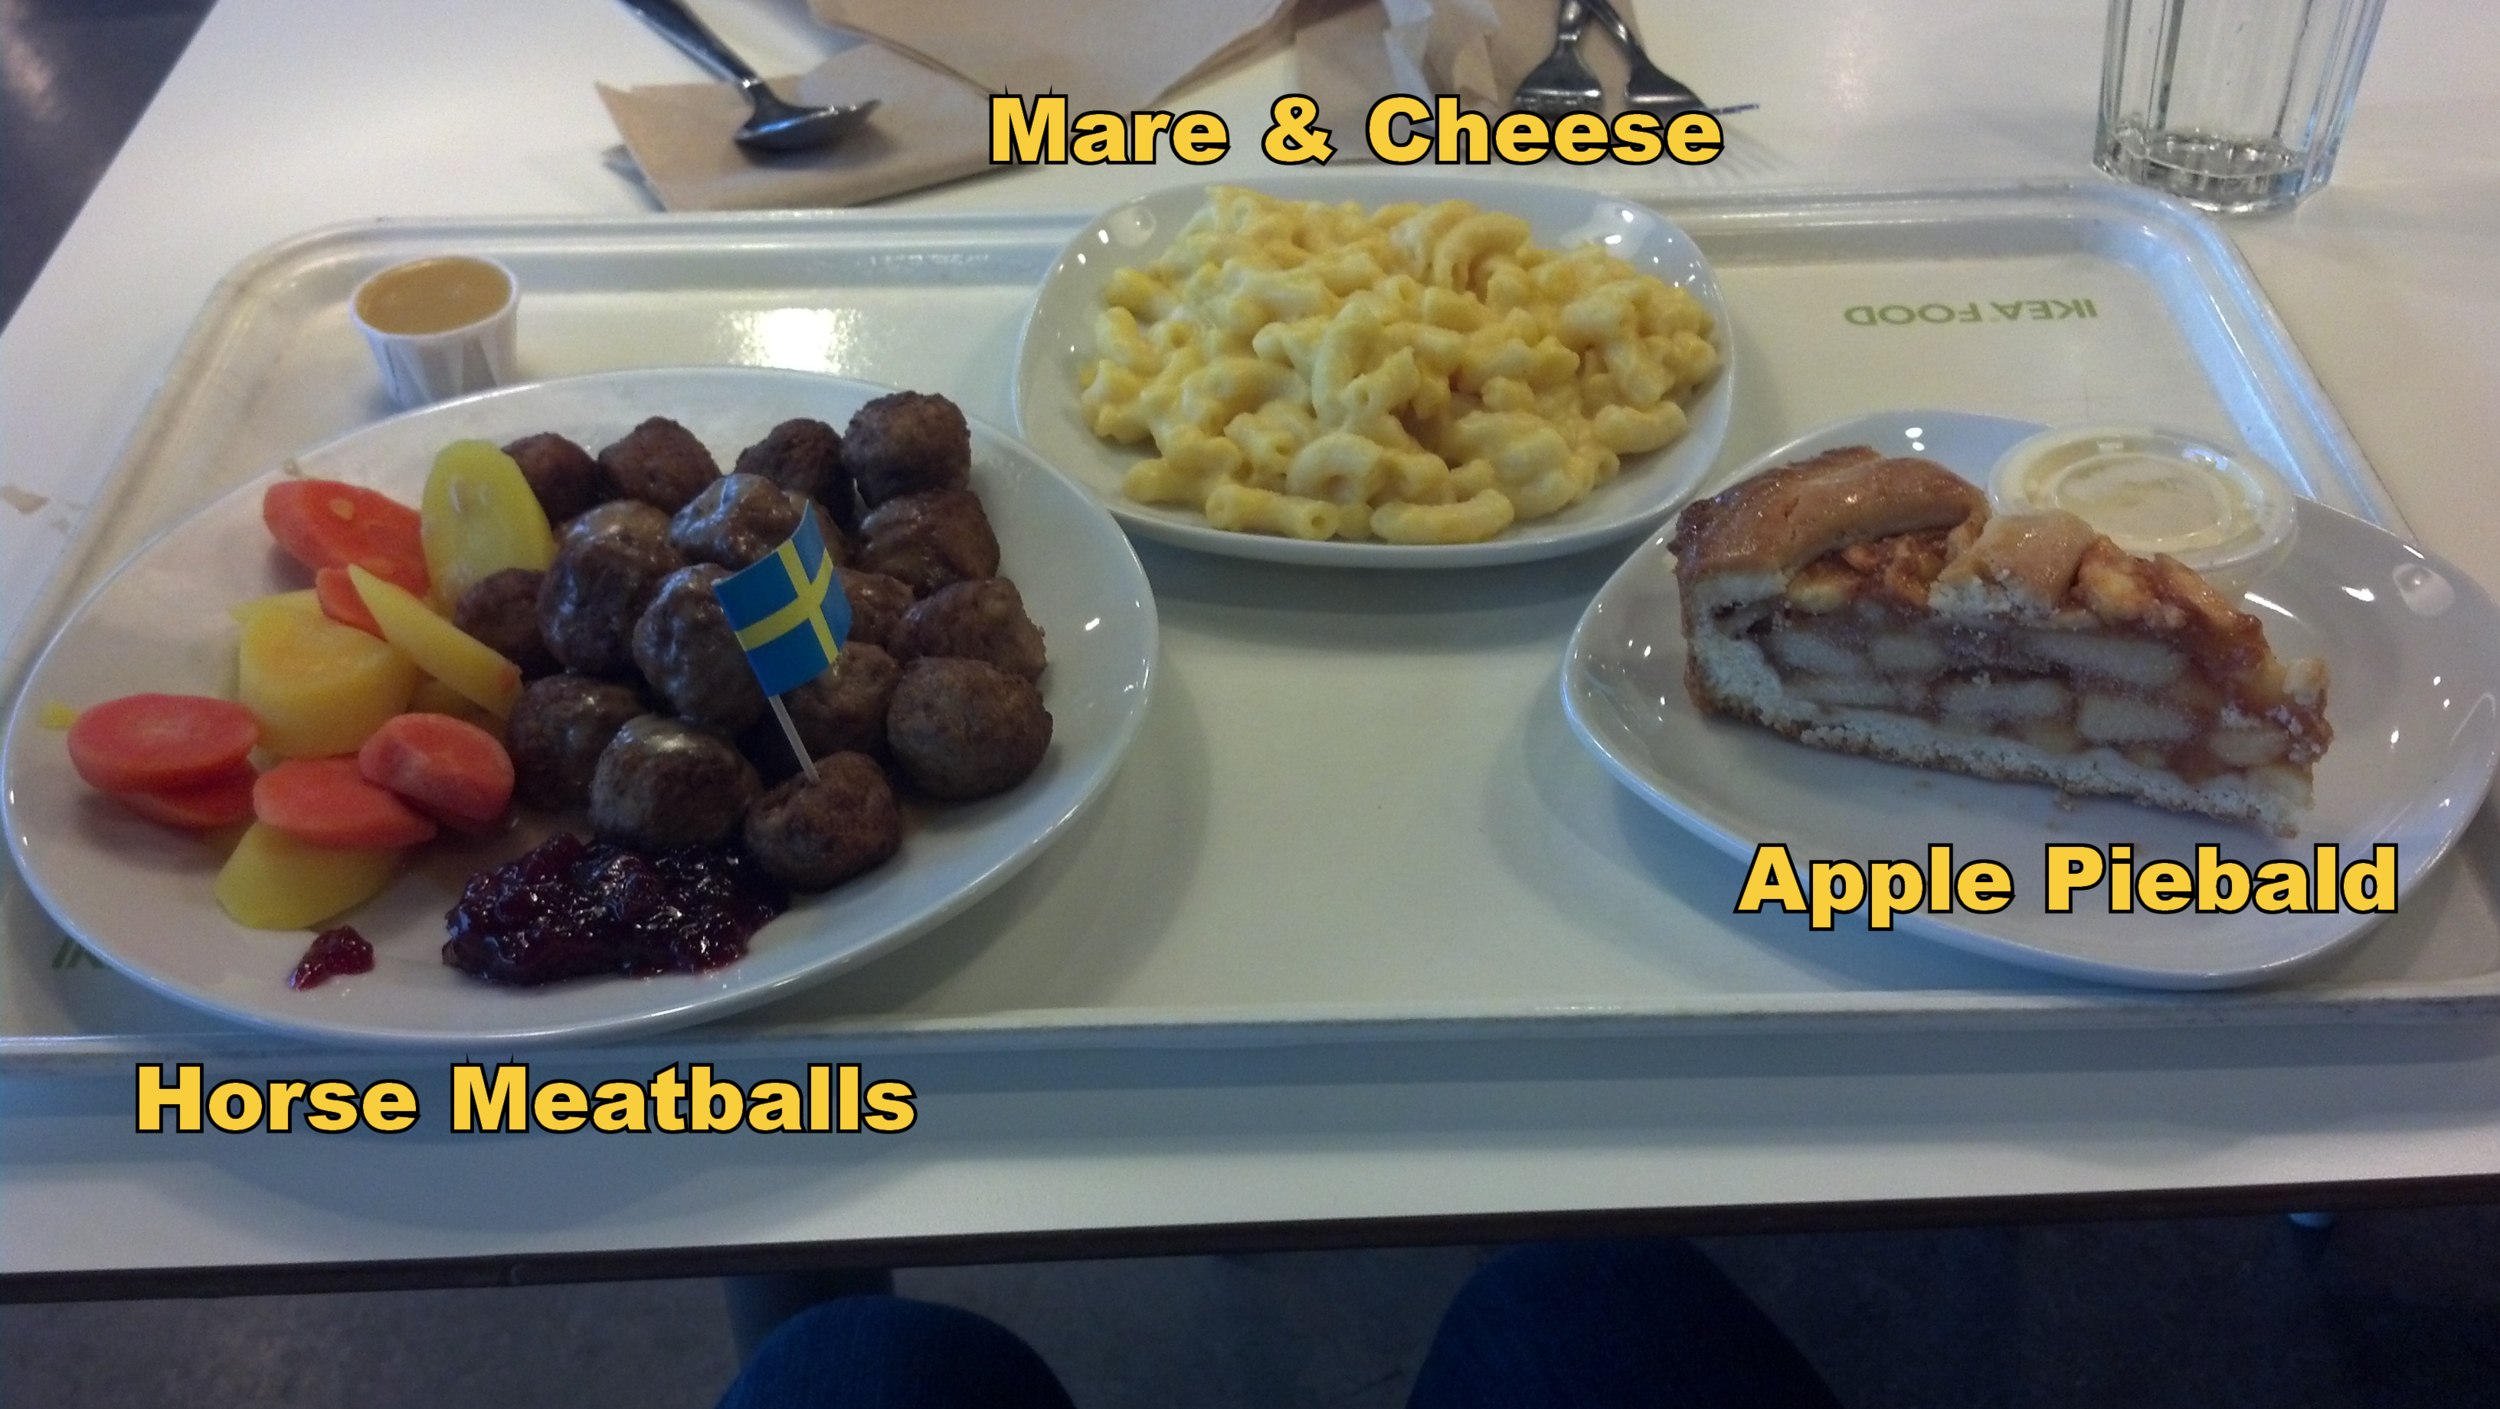 The IKEA Triple Crown. It's all fun and meatballs, until you find out you ate Hidalgo.